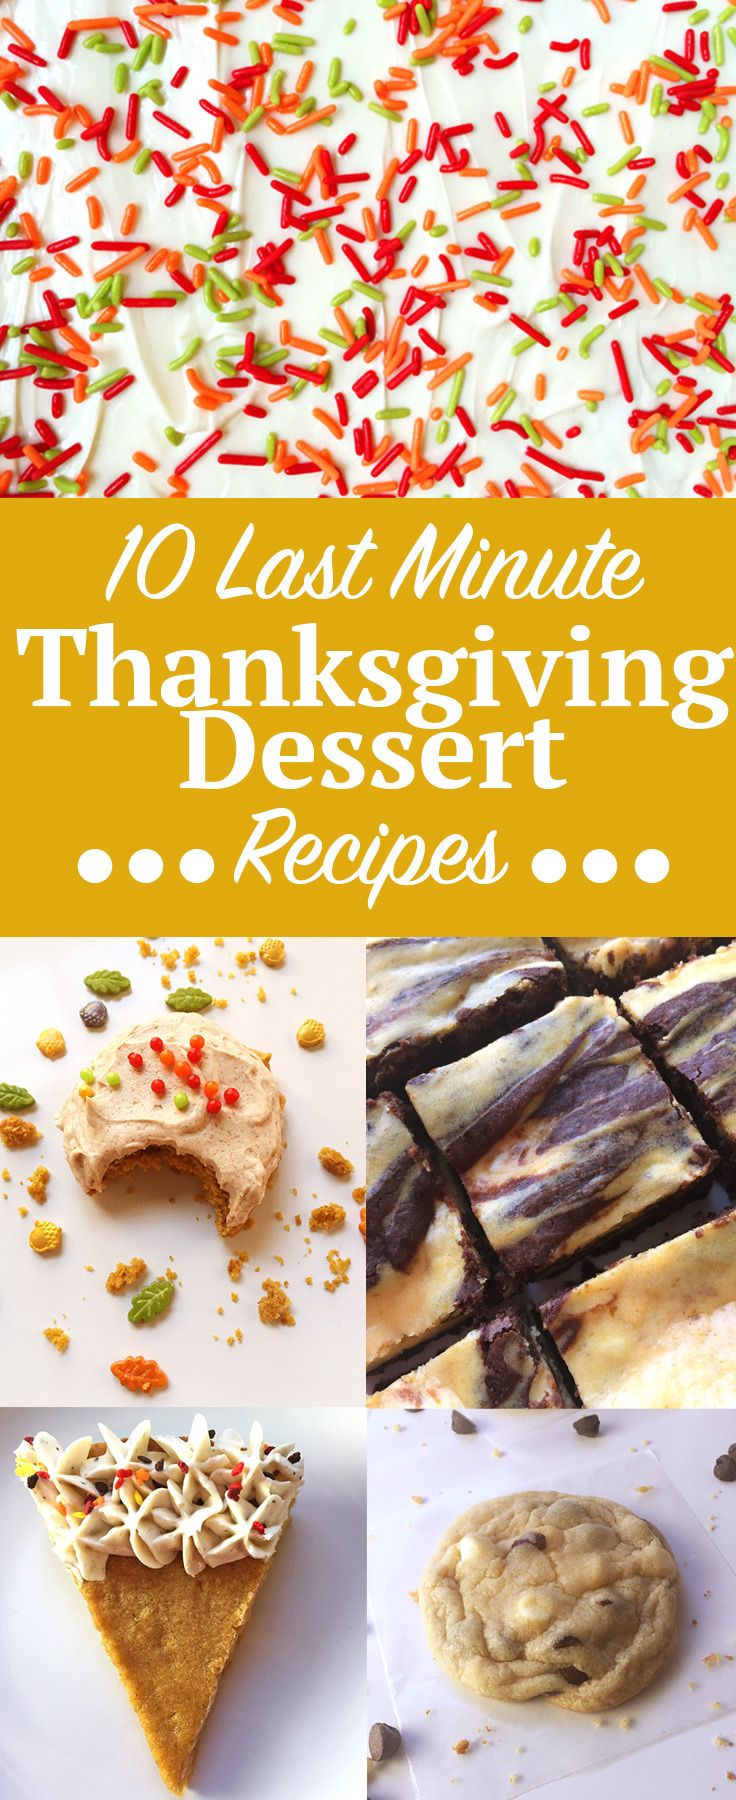 Last Minute Thanksgiving Dessert Recipes Ten Thanksgiving Desserts You Can Prepare And Or Bake In An Hour Or Less Click Through For The Full List